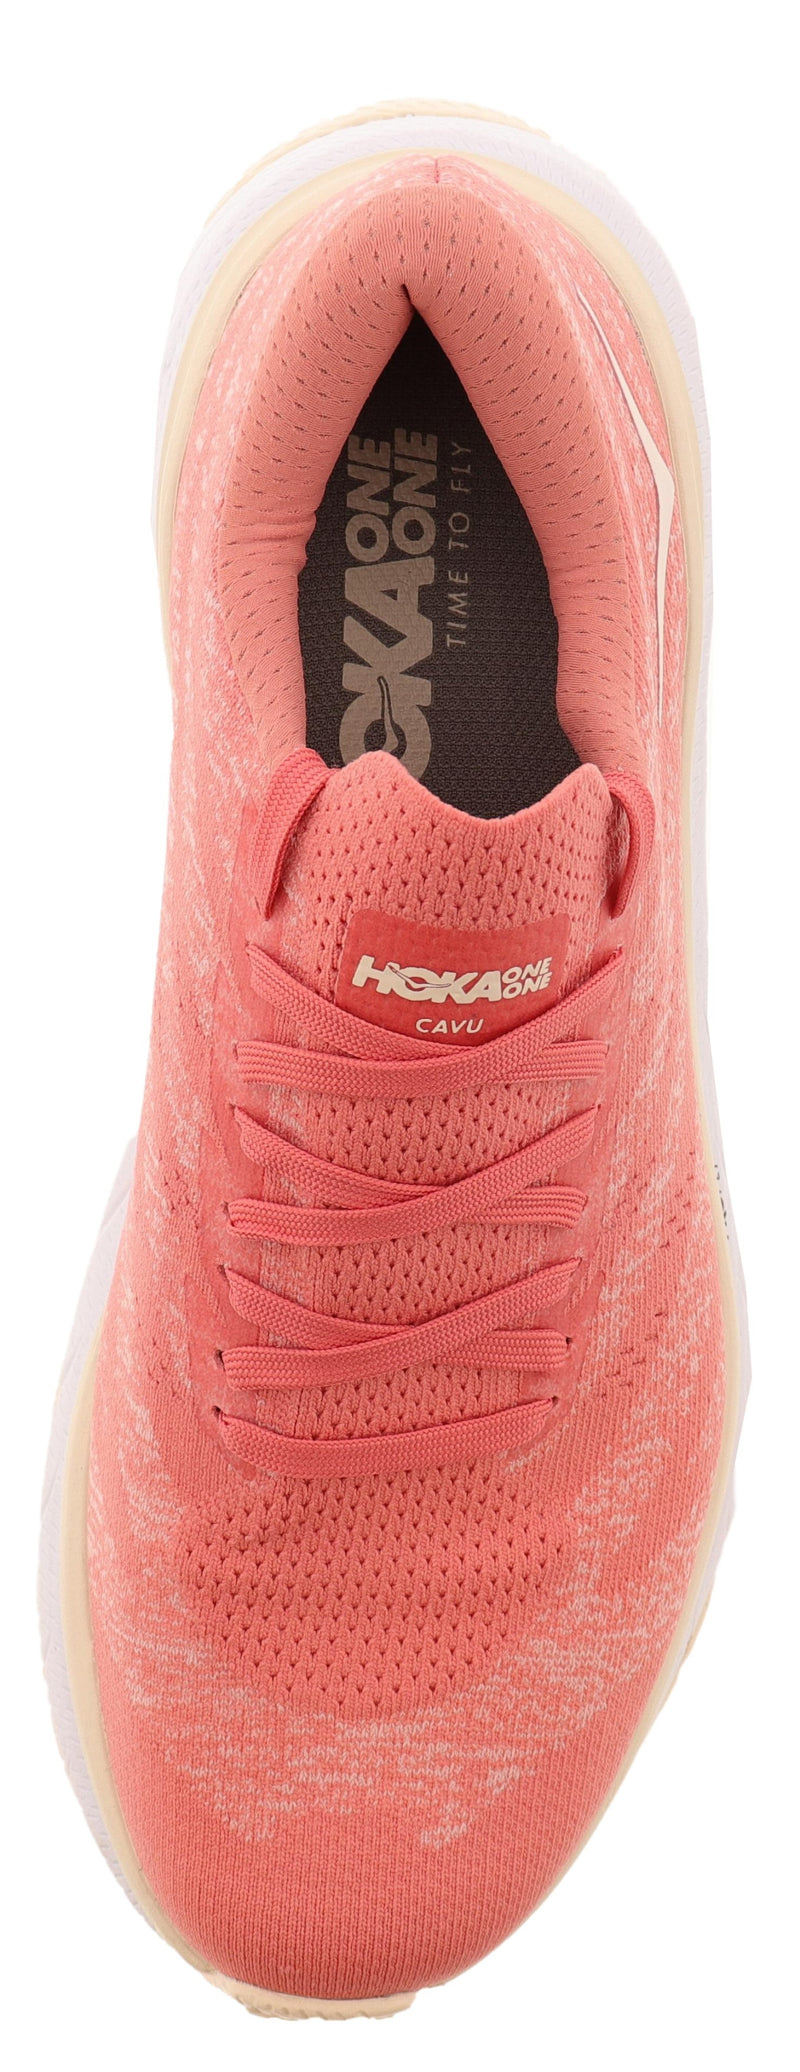 Hoka One One Women Ultra Marathon Cushioned Running Shoes Cavu 3